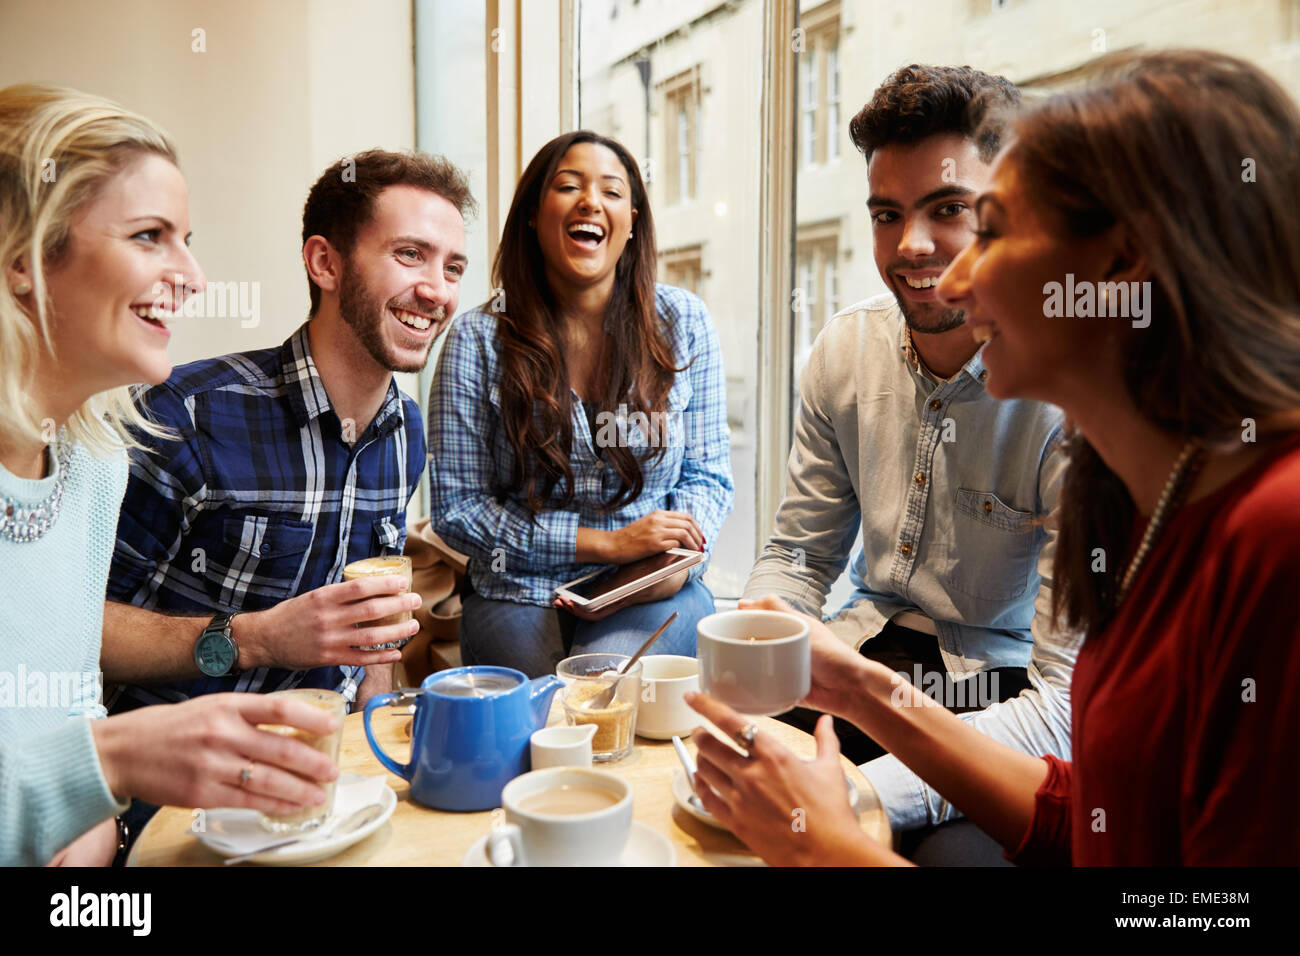 Group Of Friends In Caf' Using Digital Devices - Stock Image